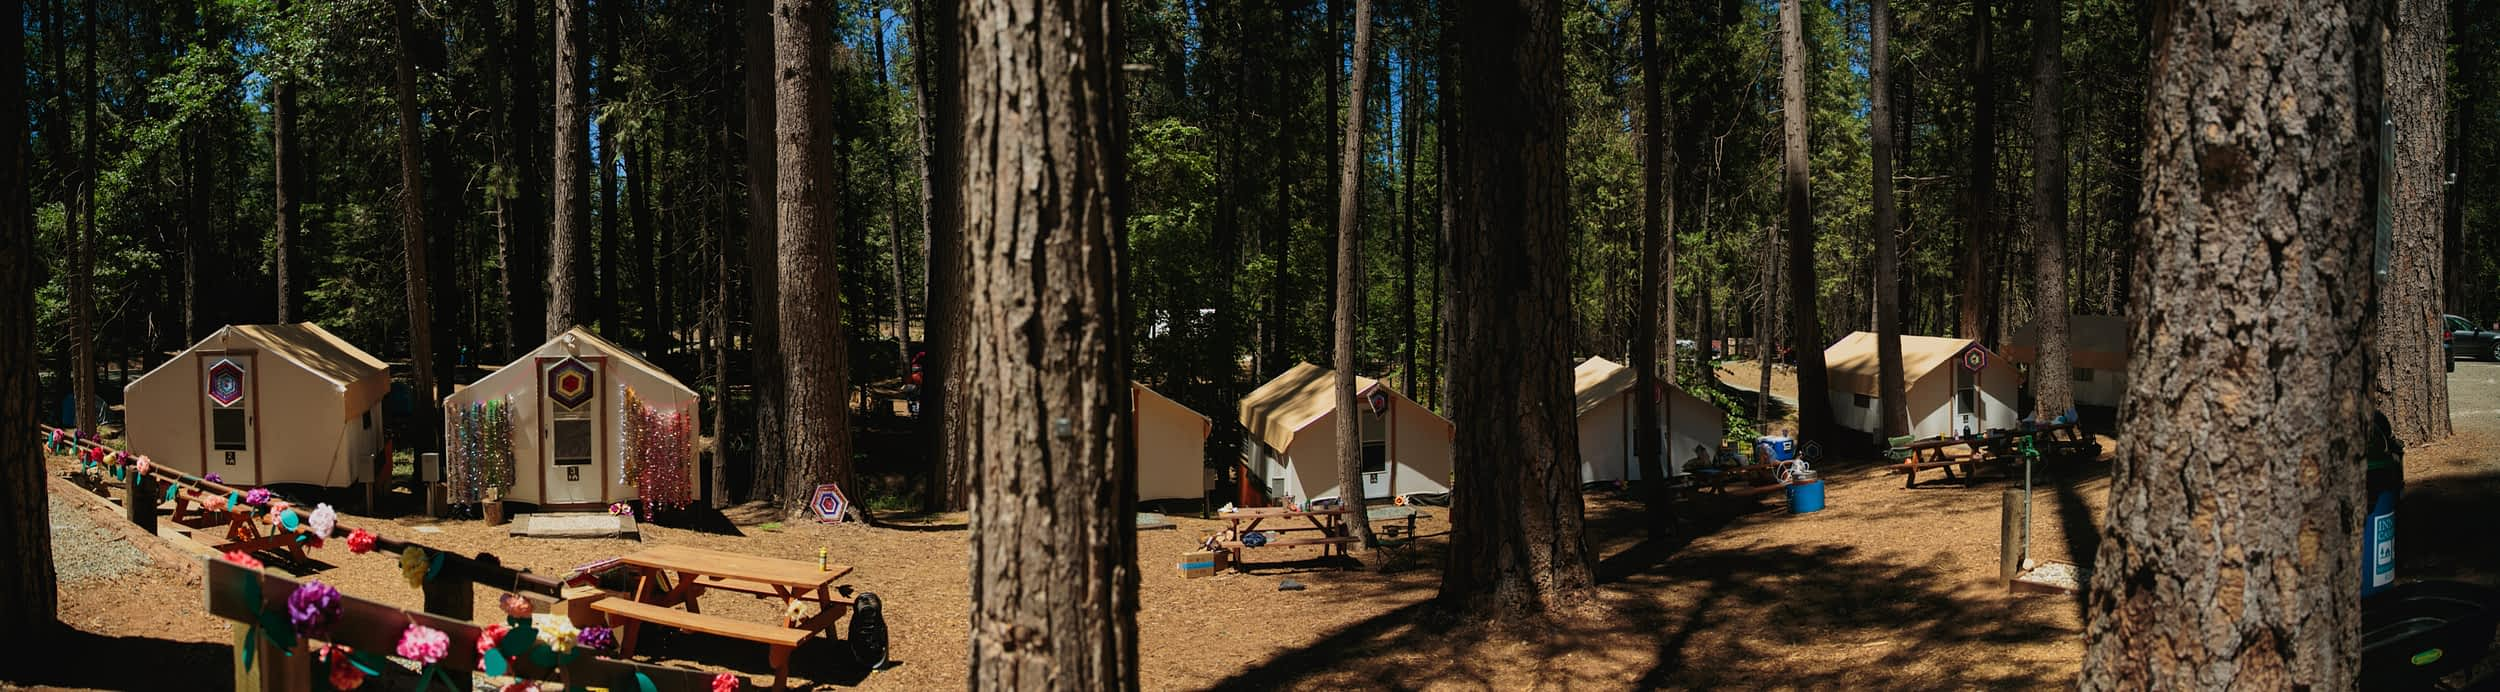 A pano of a row of cabins at the Inn Town Campground.